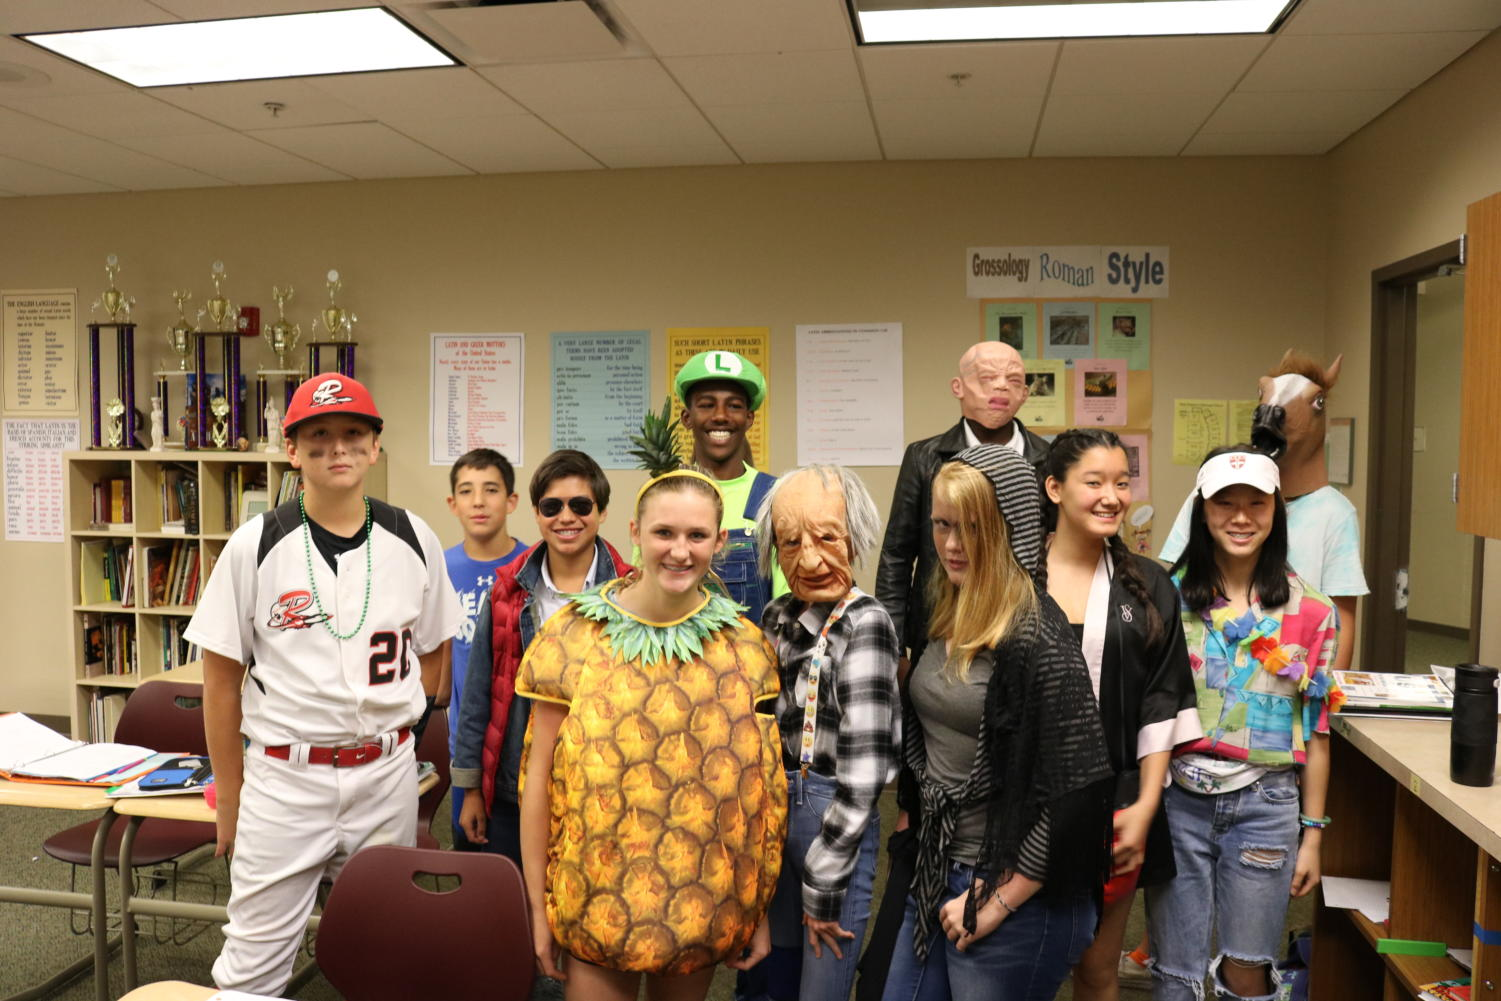 8th+graders+in+Mr.+Haakman%27s+class+pose+in+their+Halloween+garb.